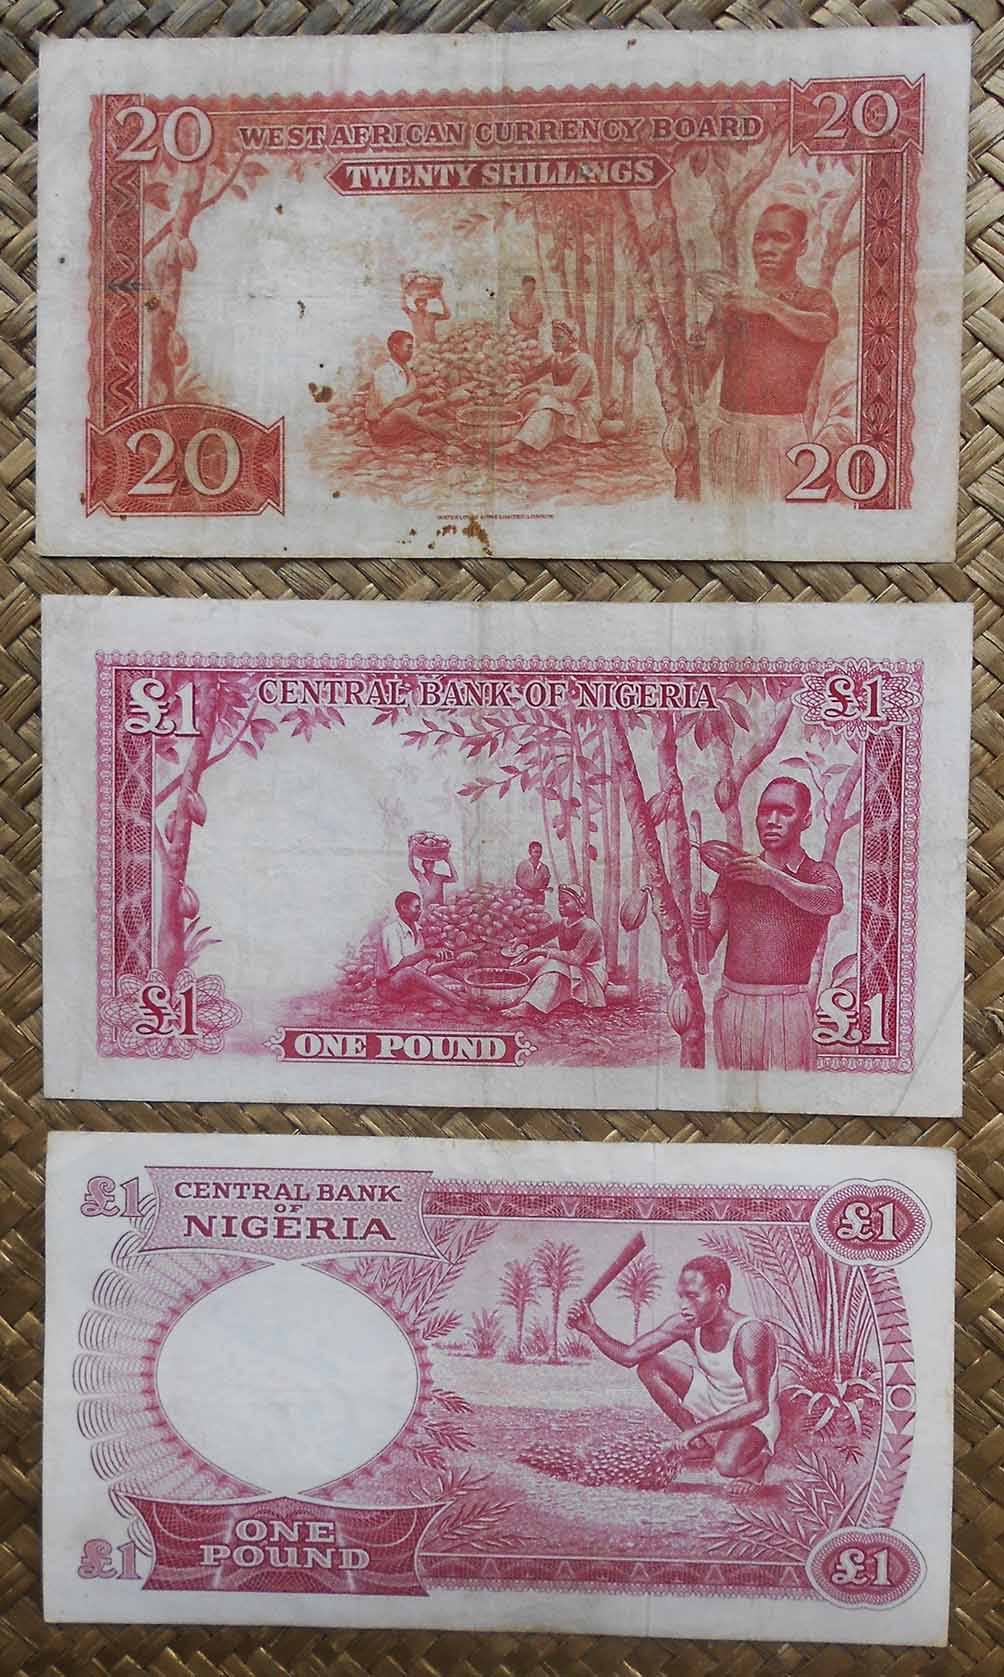 British West Africa vs. Nigeria 20 shilling 1953 vs. 1 pound 1958 vs. 1967 reversos